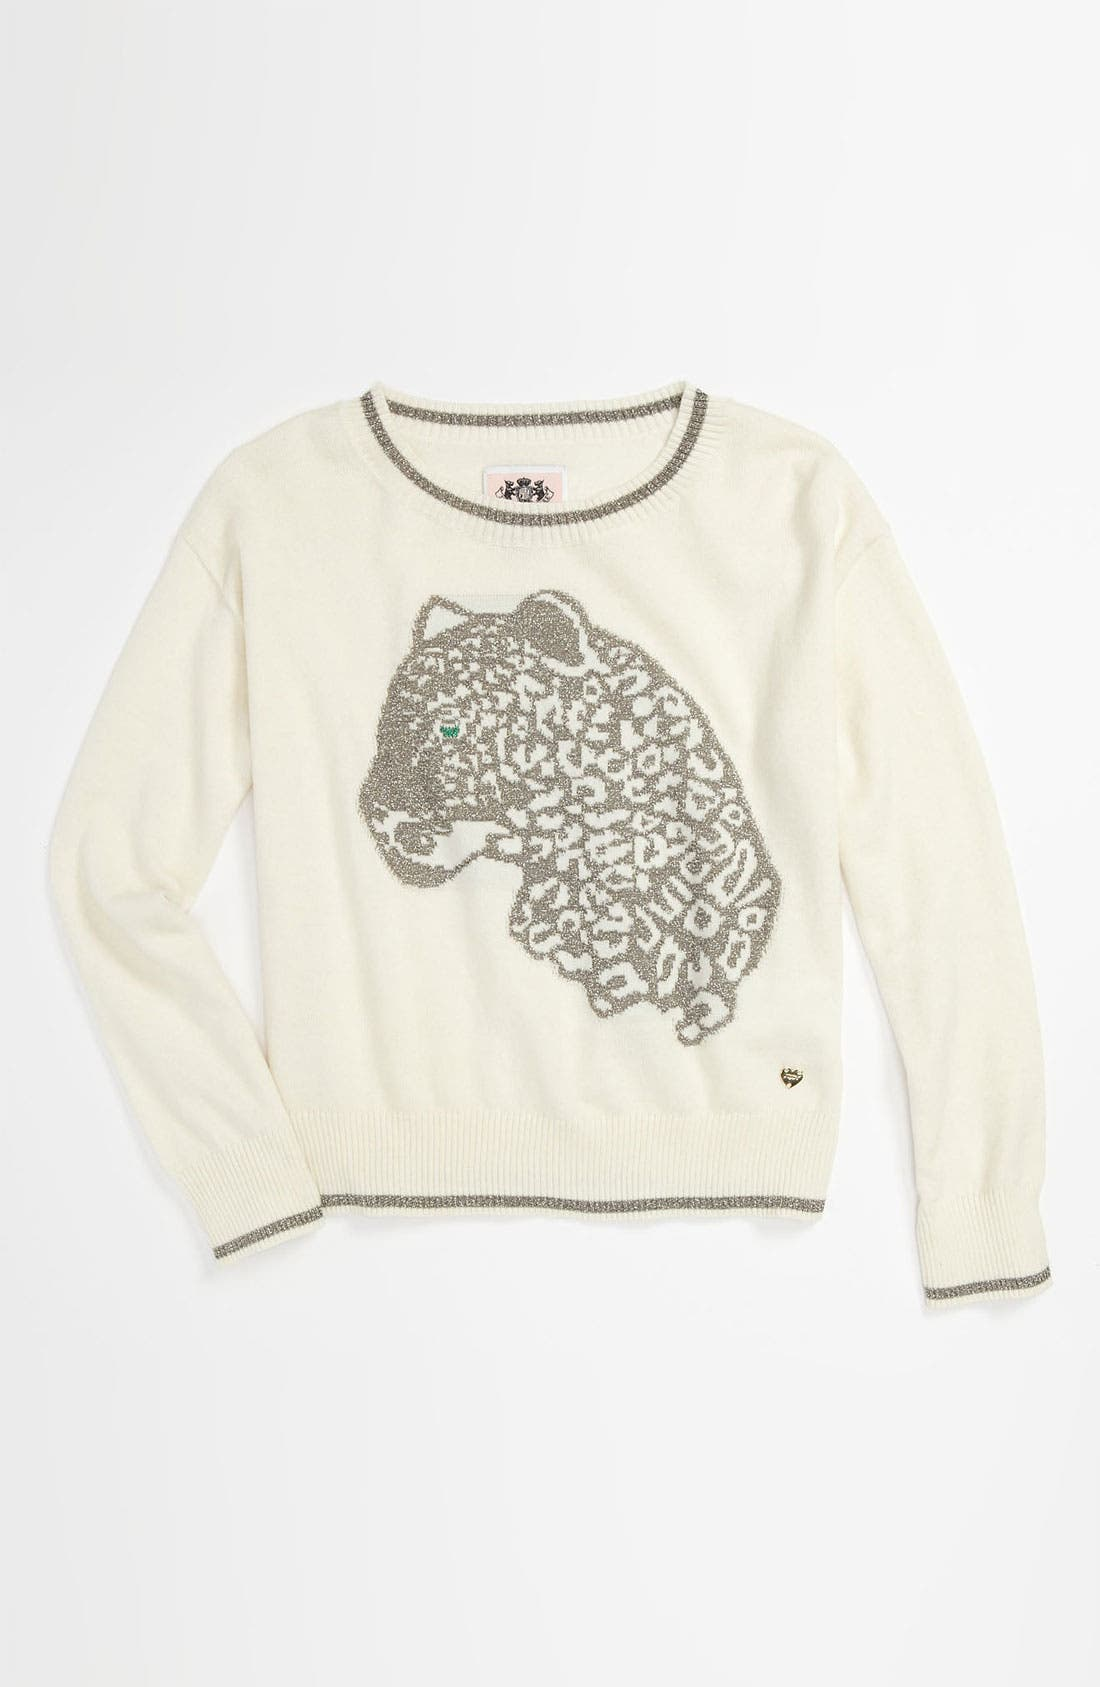 Main Image - Juicy Couture 'Snow Leopard' Sweater (Little Girls & Big Girls)